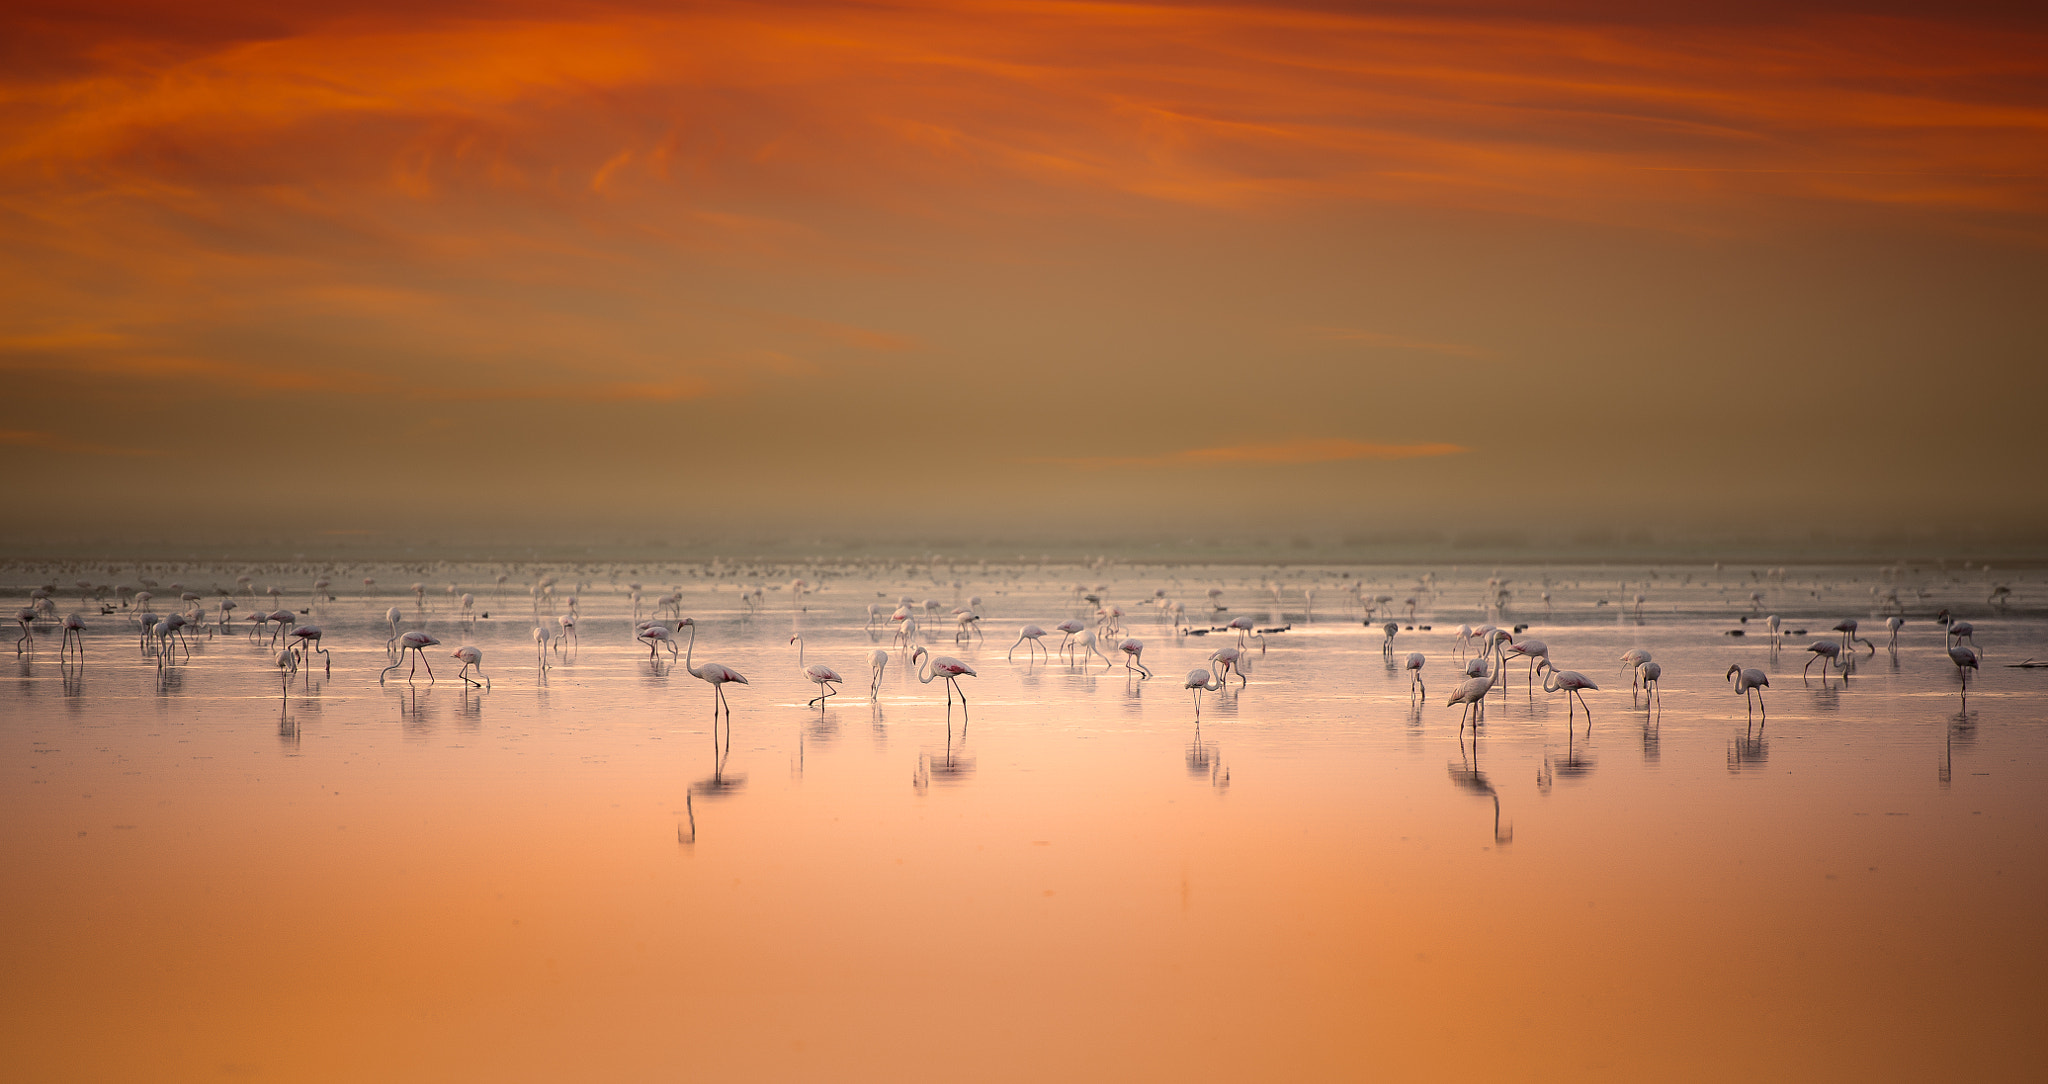 Photograph Flamingoes by Hani Latif Zaloum on 500px